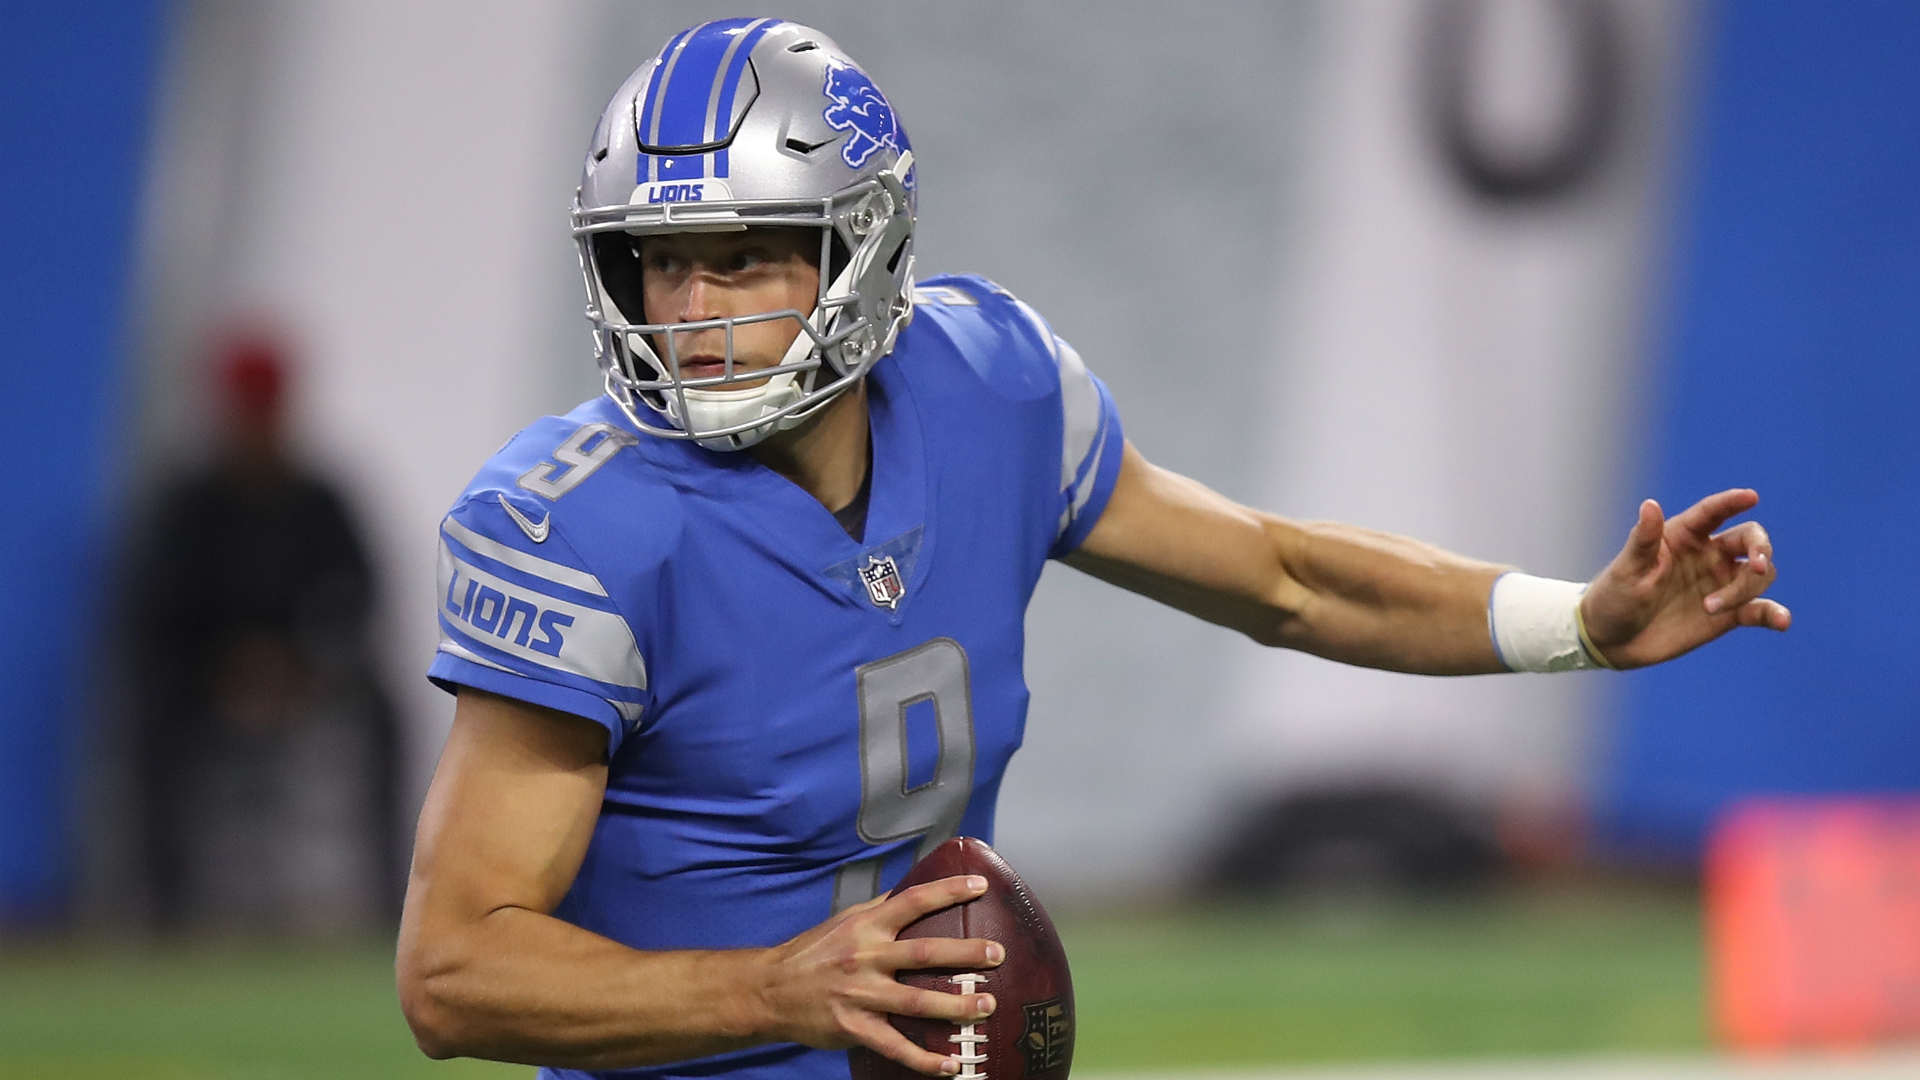 Lions resign Stafford to 5-year extension